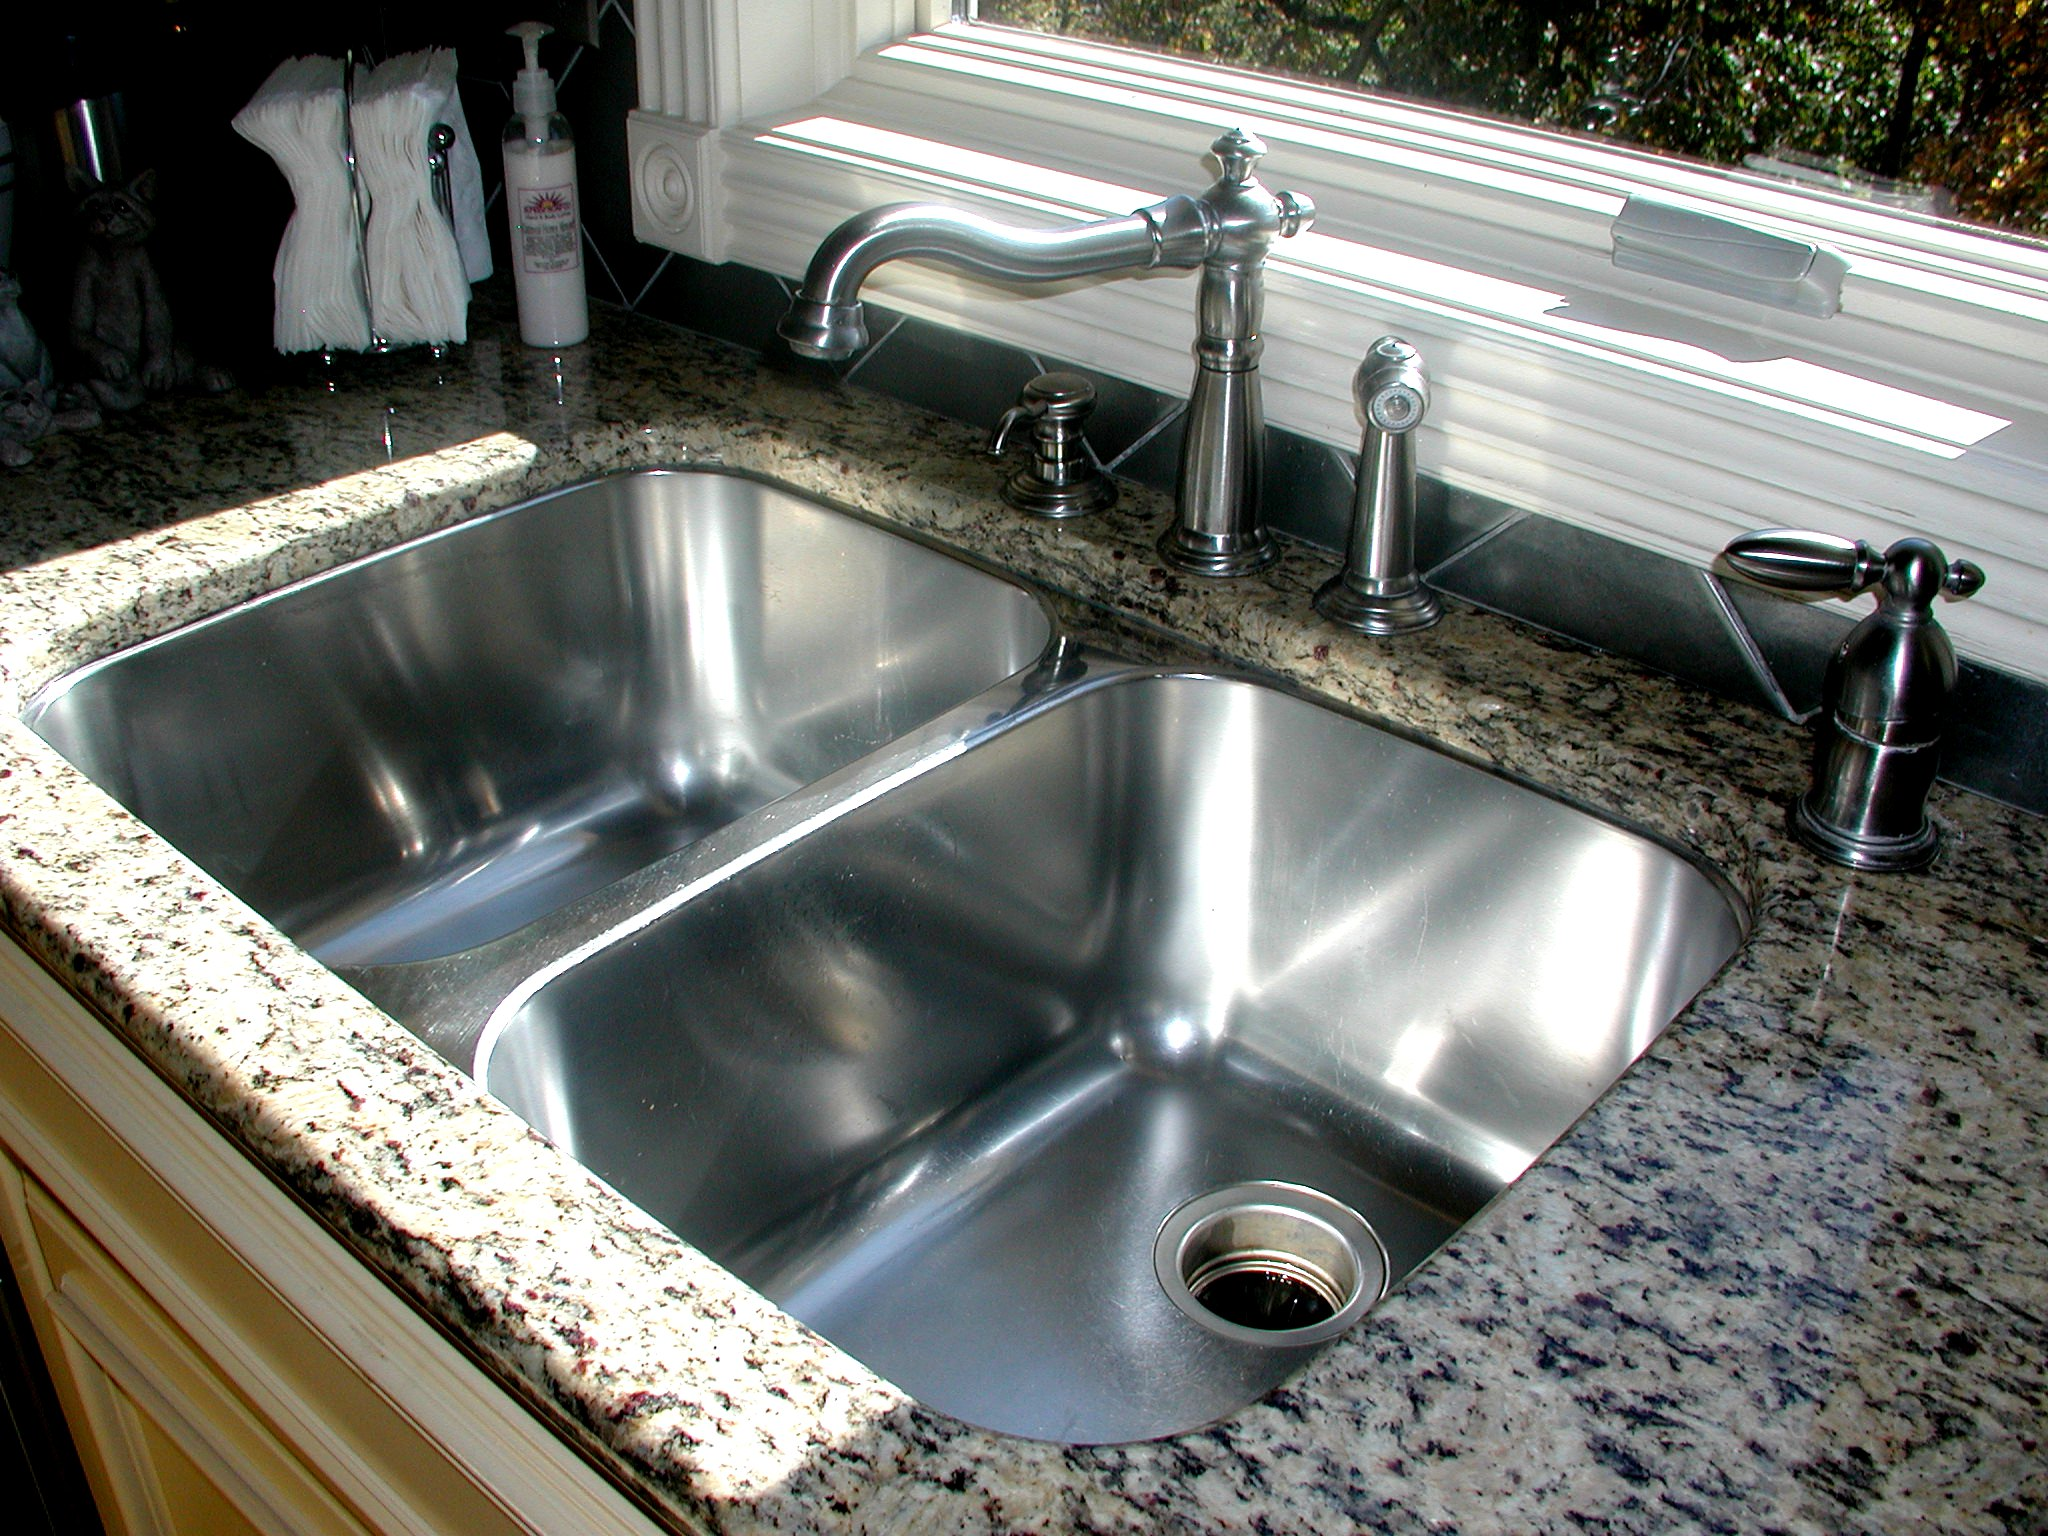 Granite Or Stainless Steel Sink : one of a kind high functioning stainless steel corner sink. This sink ...